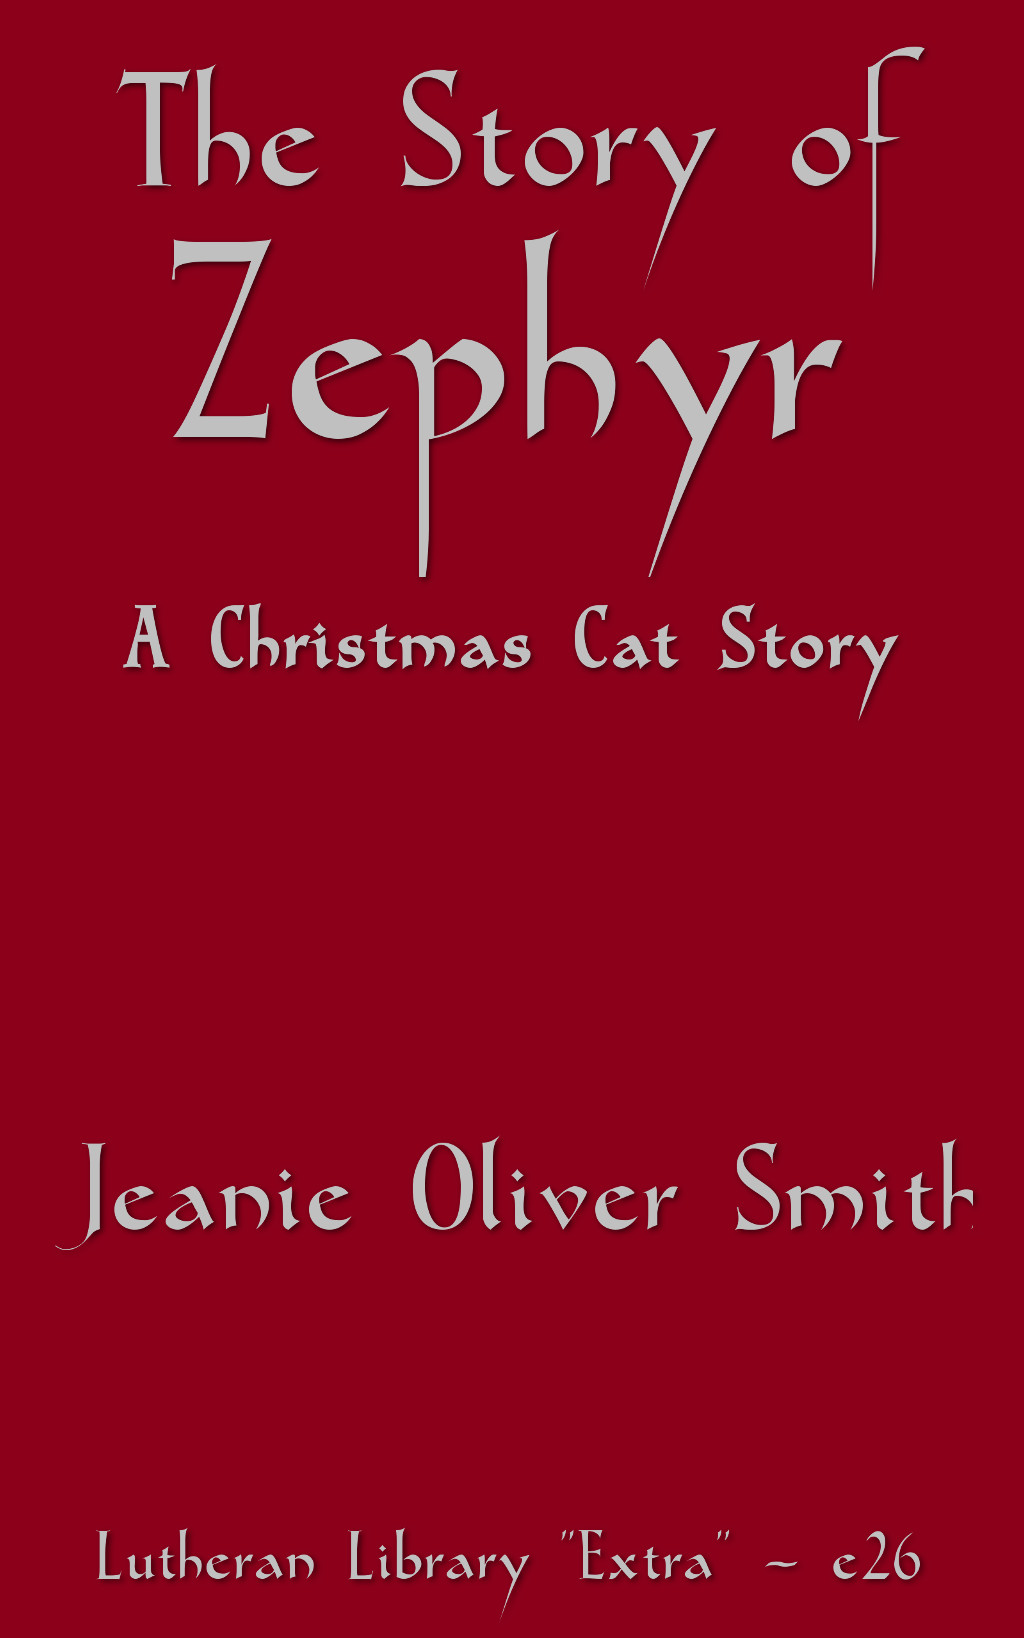 The story of Zephyr: a Christmas Cat Story by Jeanie Oliver Davidson Smith